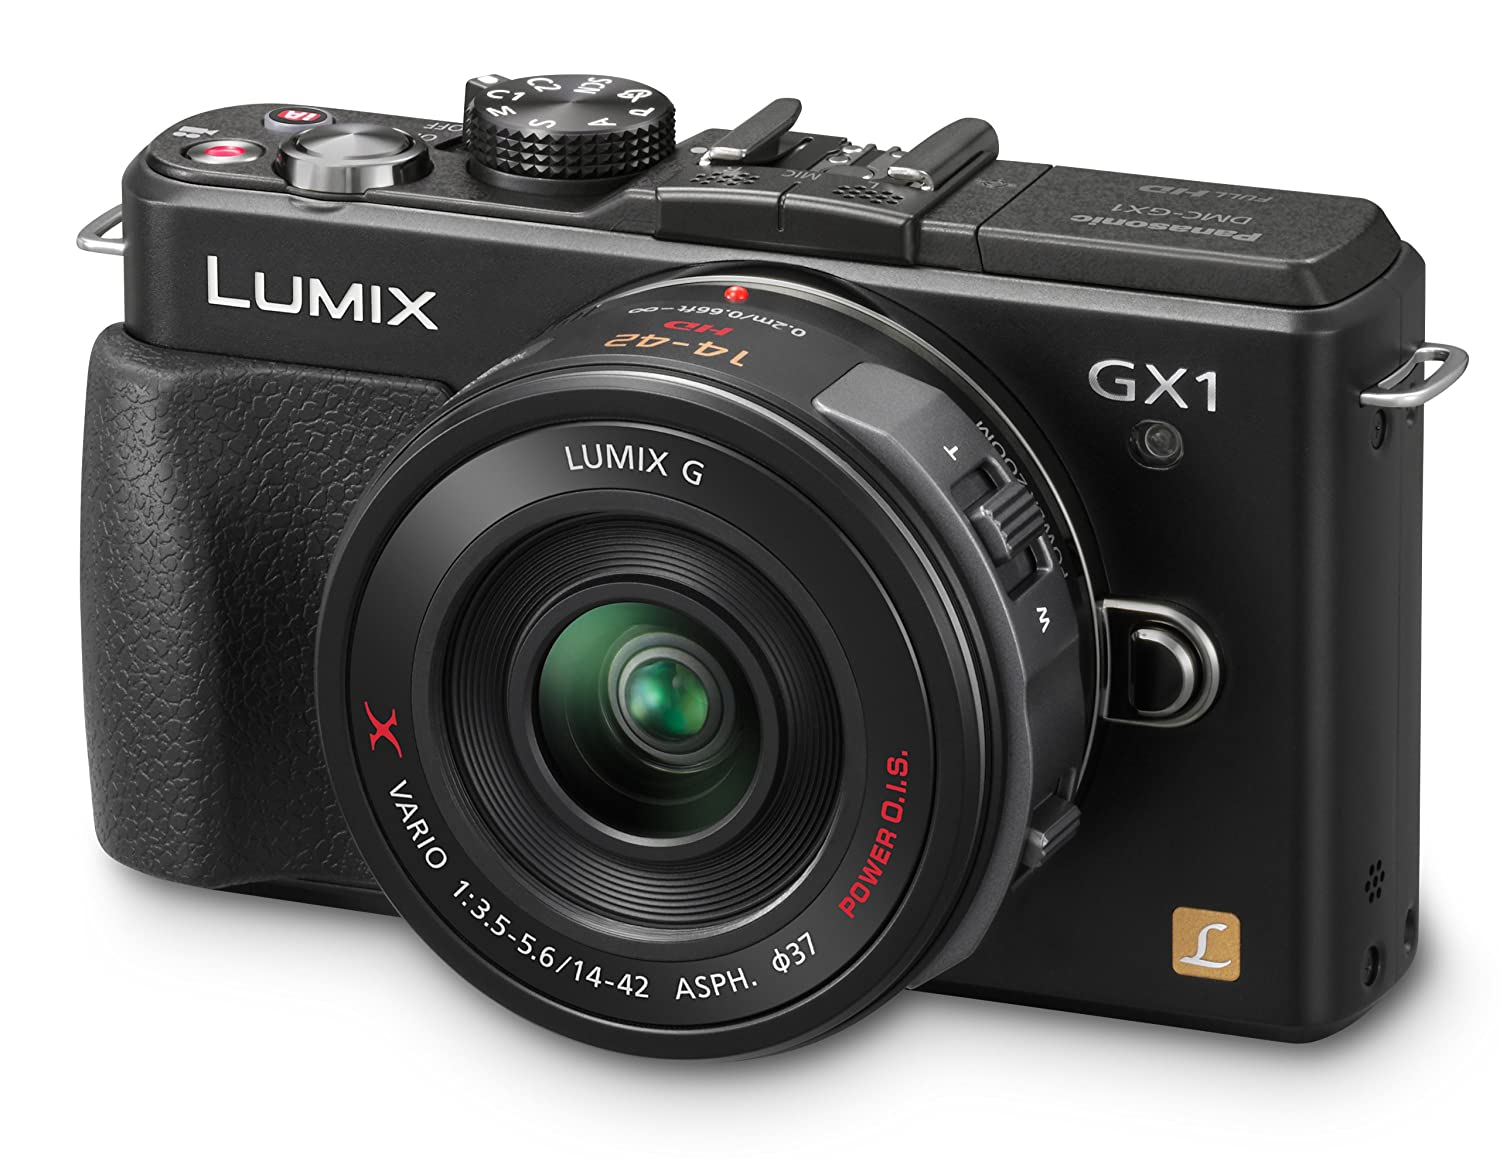 Mirrorless camera - Panasonic Lumix DMC-GX1X 16 MP Micro 4/3 Compact System Camera, 3-Inch LCD Touch Screen and 14-42mm X Power Zoom Lens (Black): full functionality in a compact form